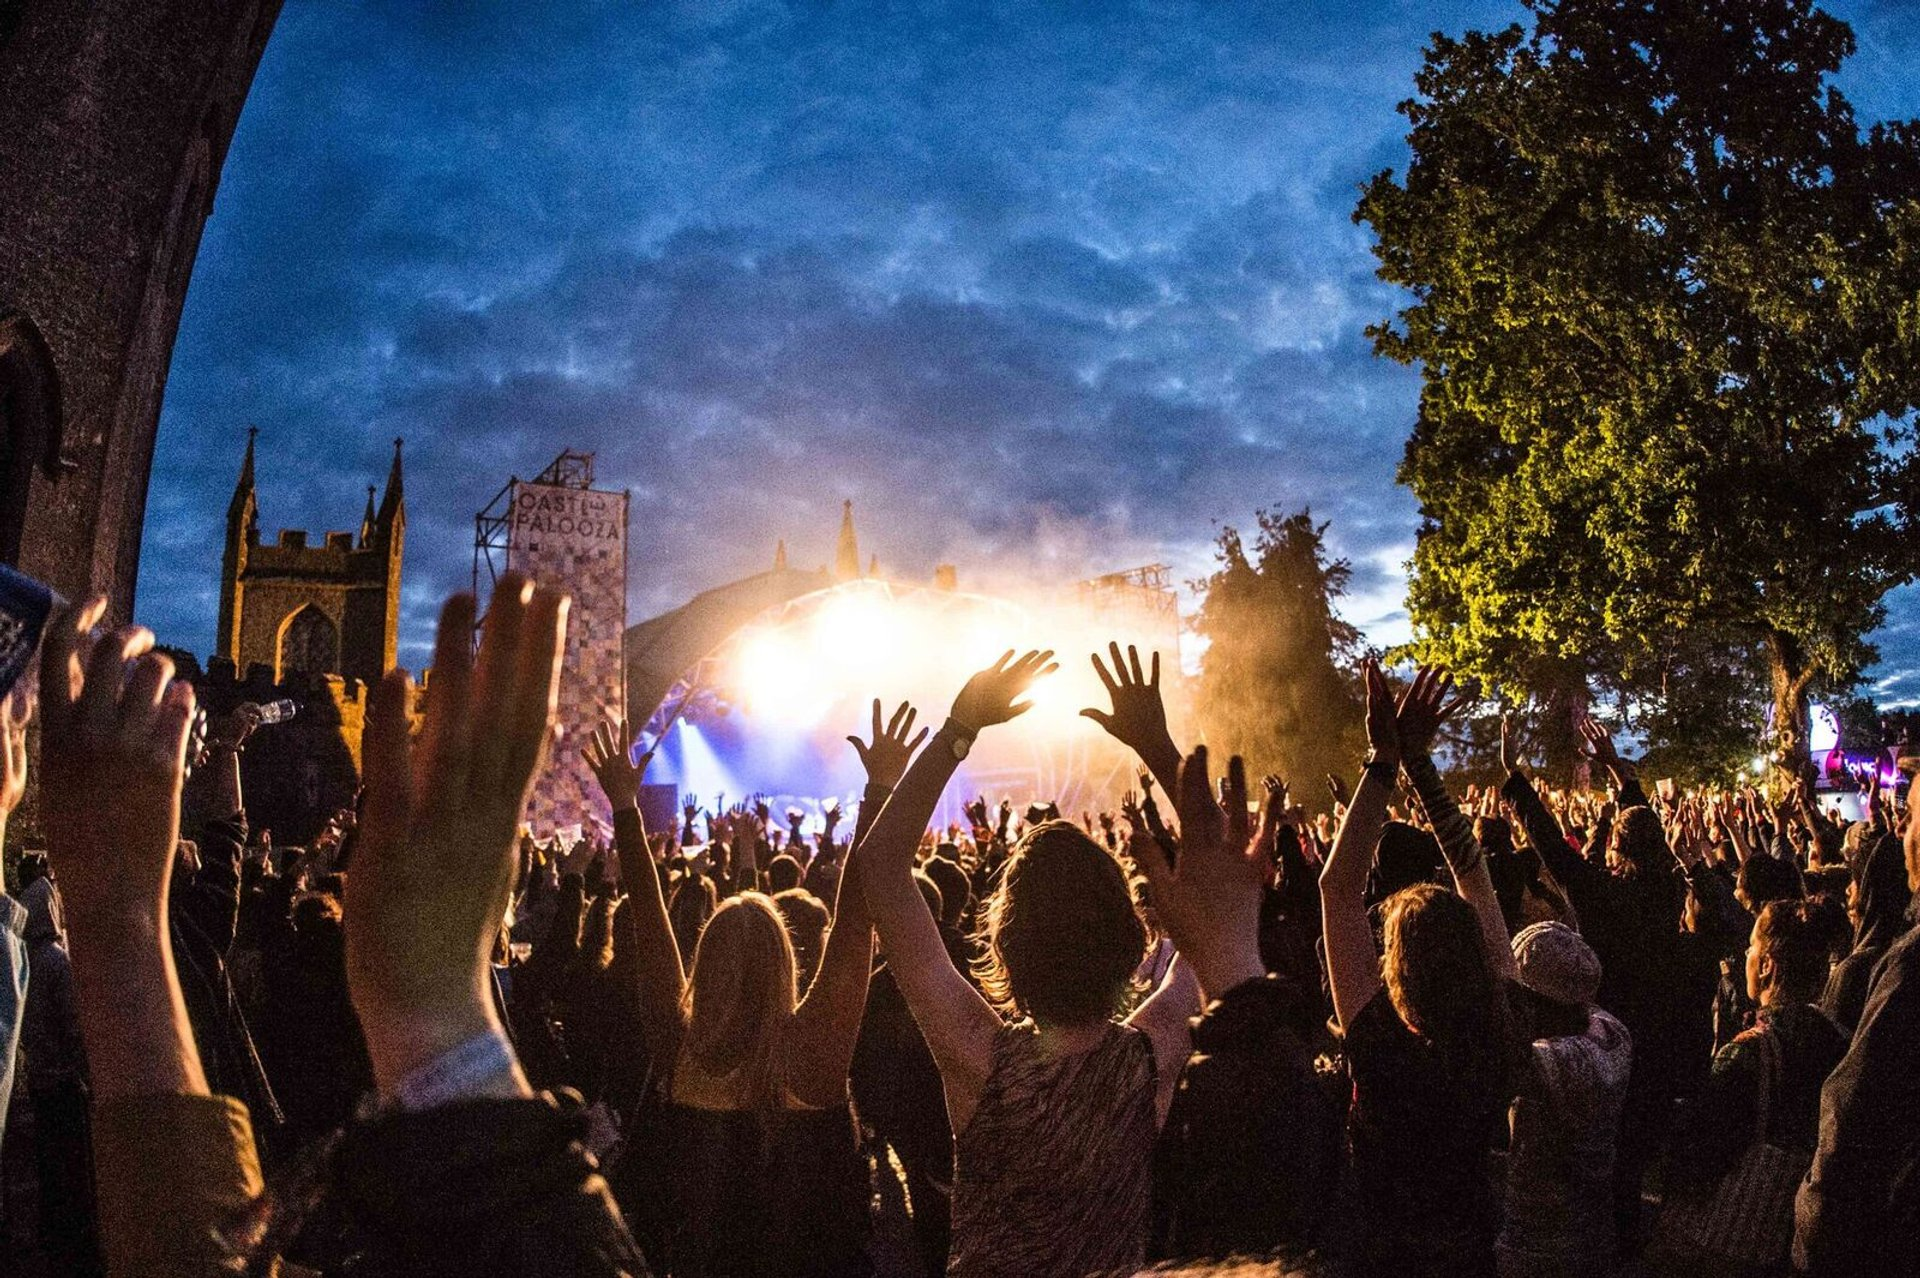 Castlepalooza in Ireland 2020 - Best Time